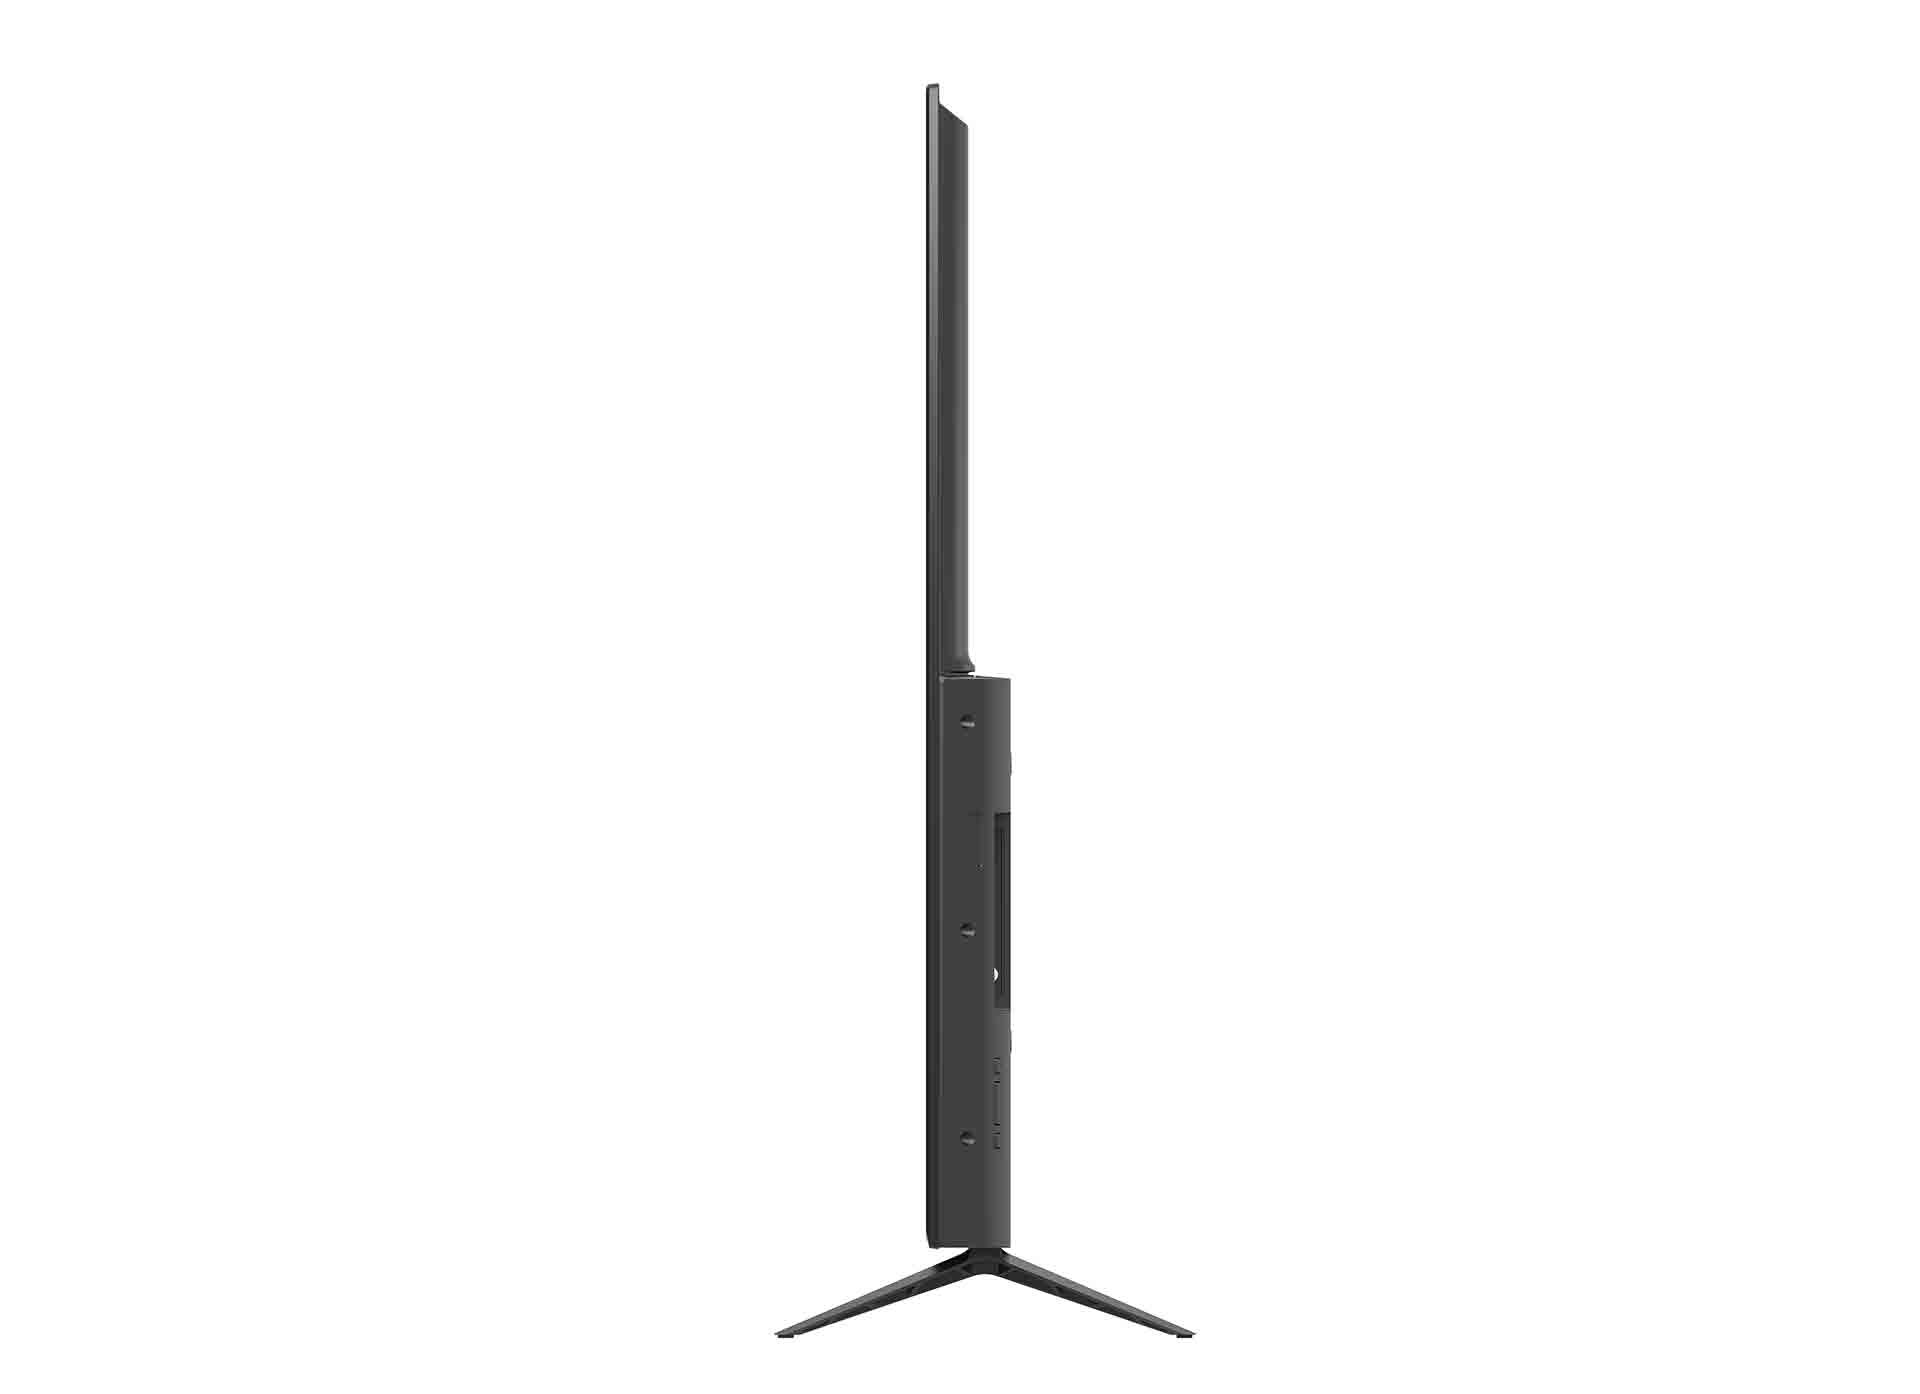 Vizio 655-G9 side view